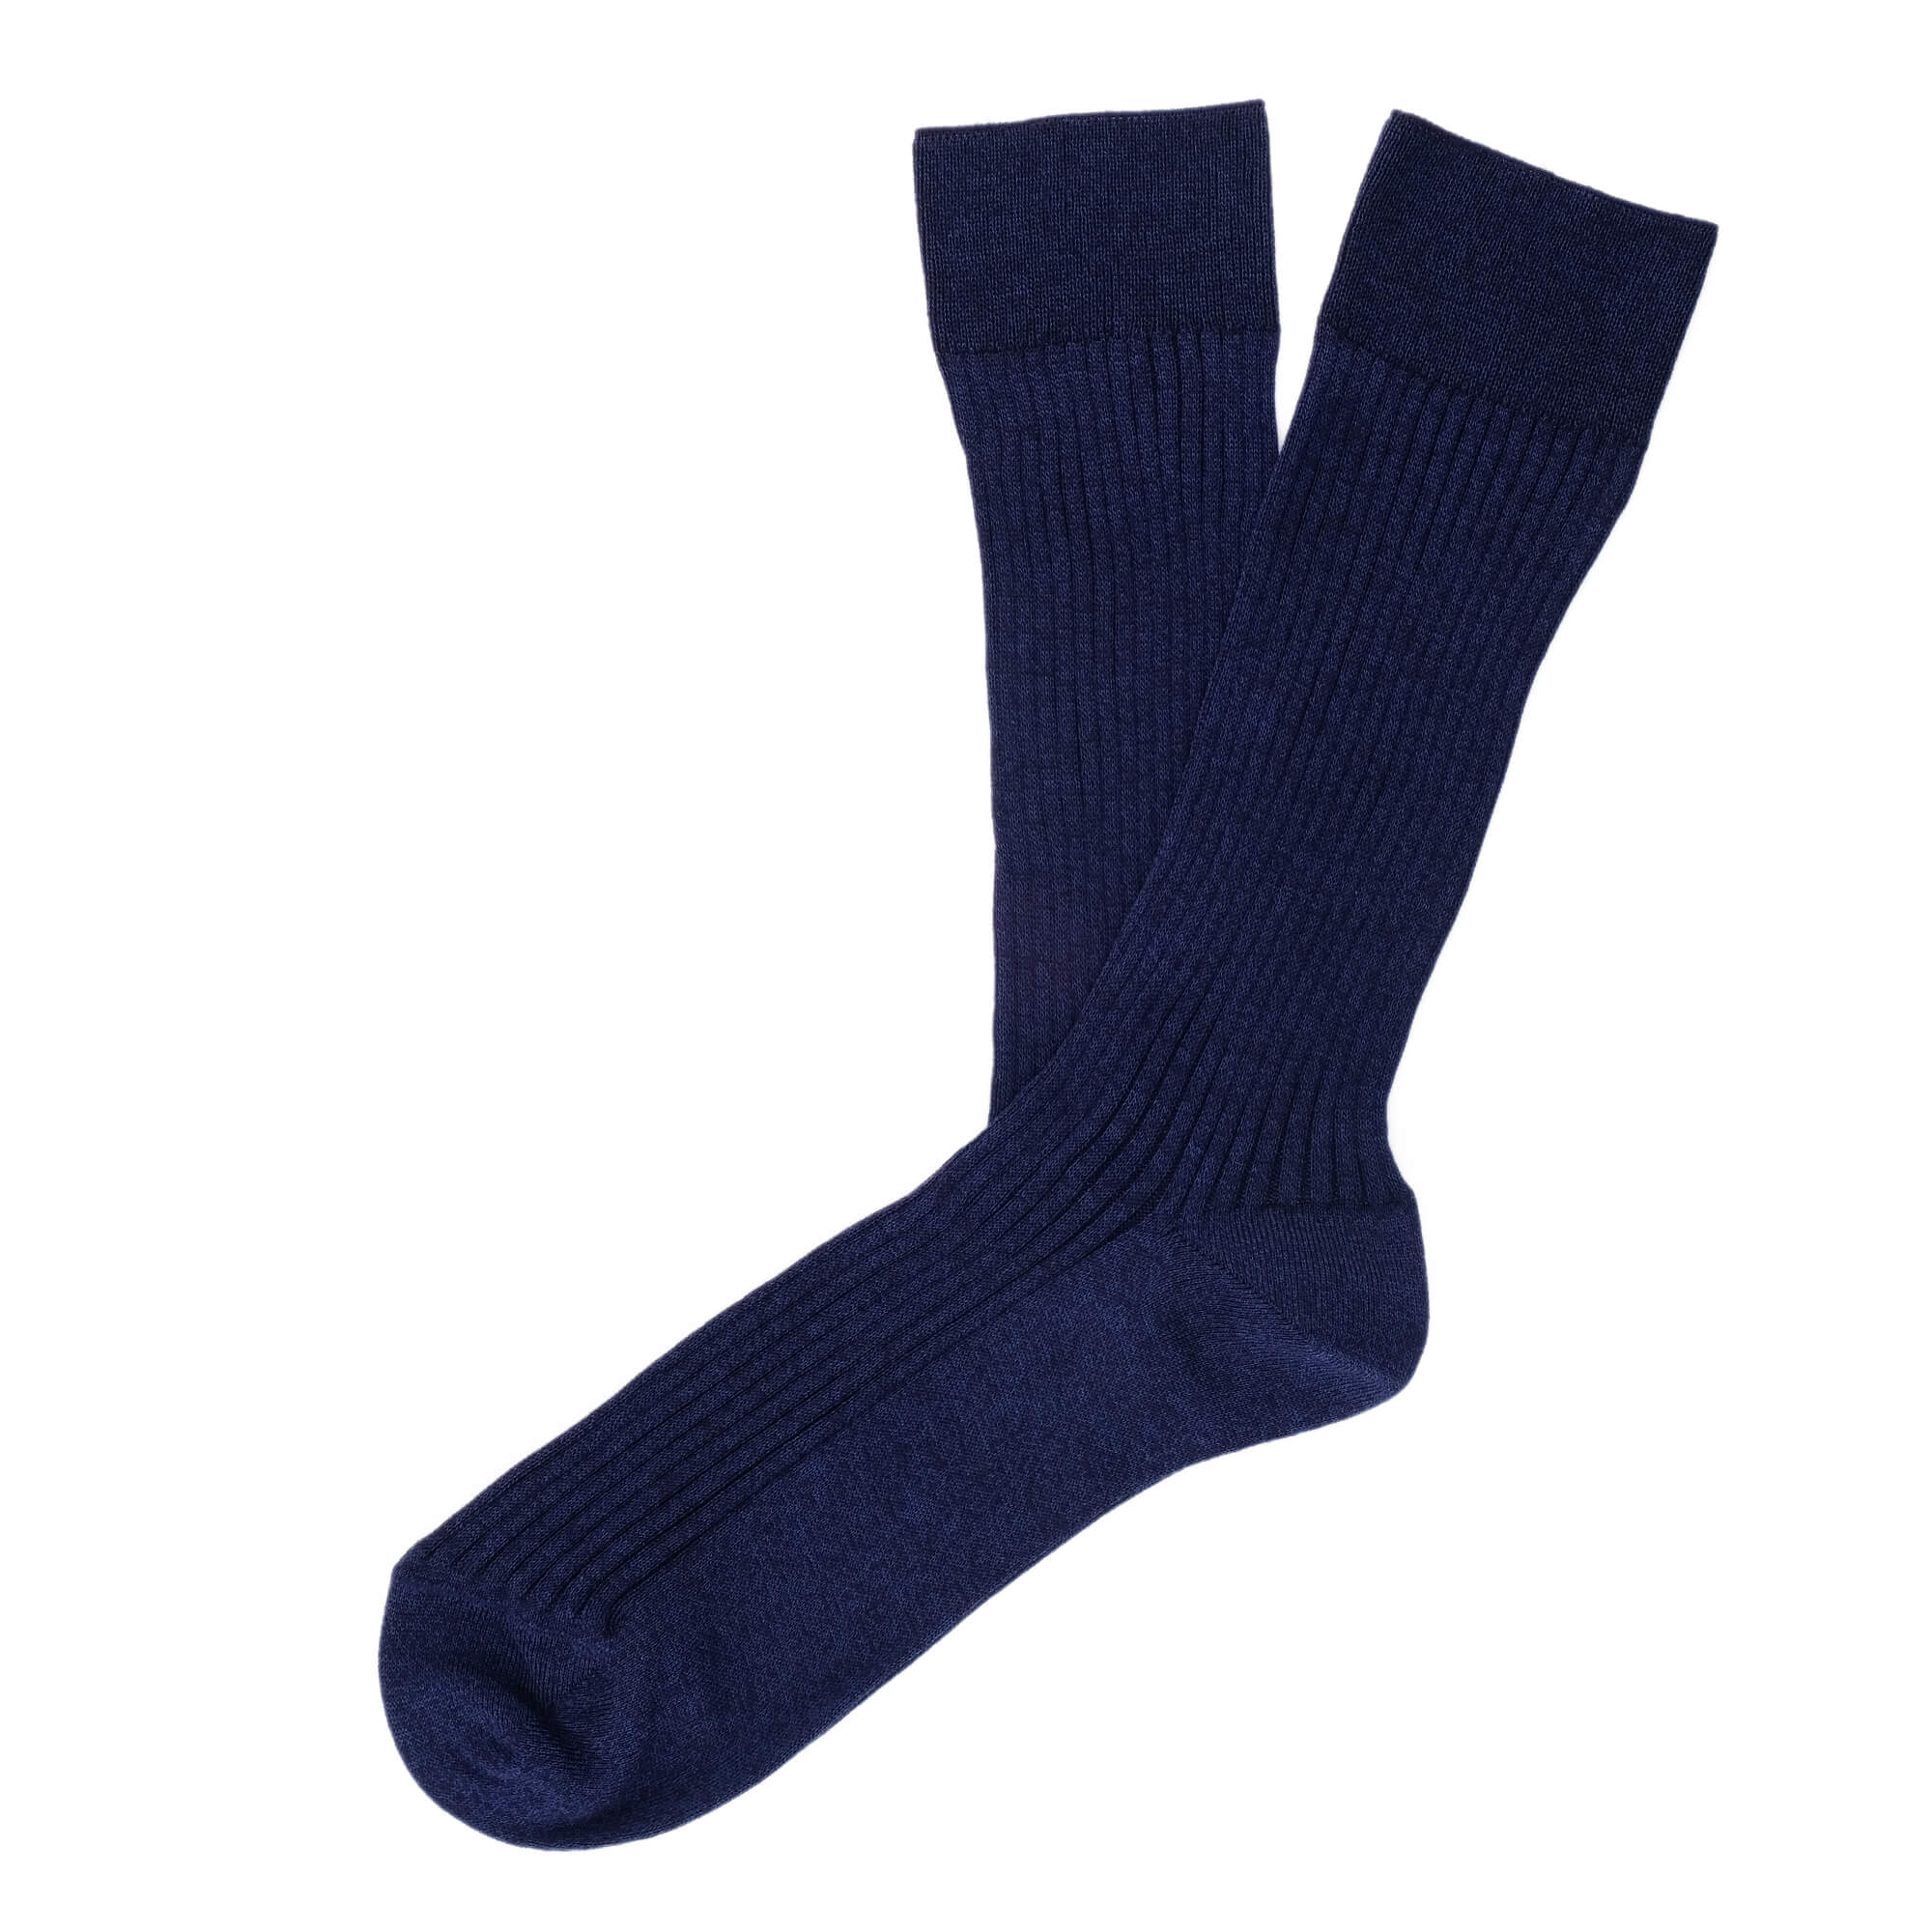 Thousand Ribs Men's Socks - Blue